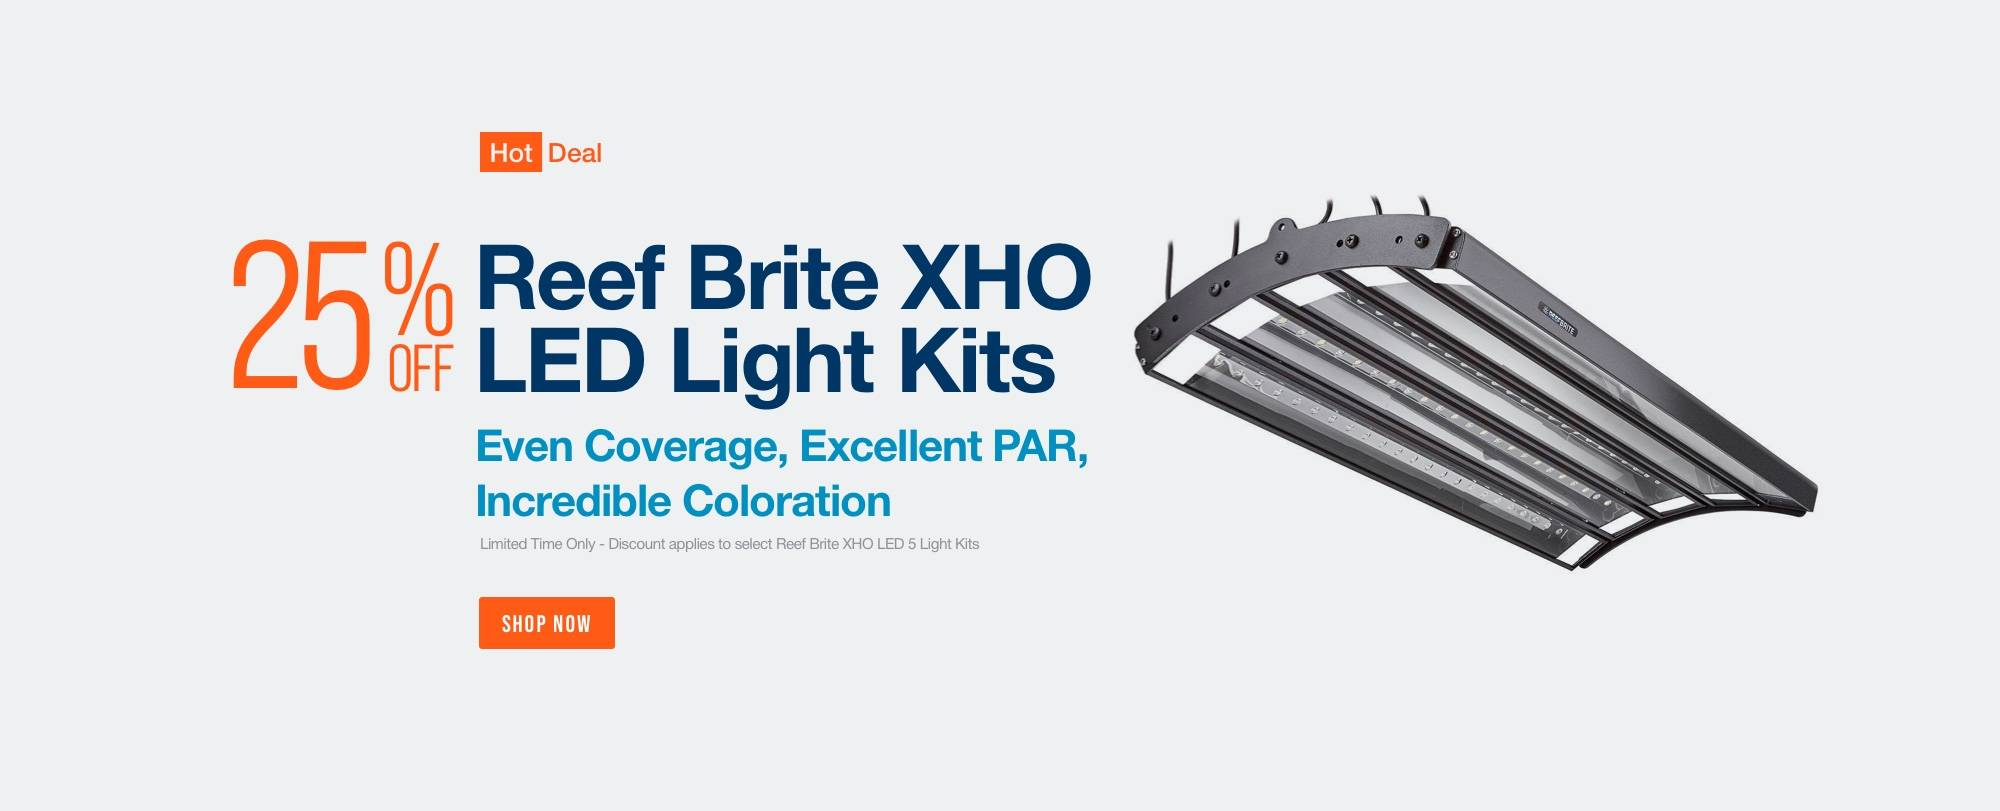 Save 25% Reef Brite XHO LED Light Kits - Even Coverage - Excellant PAR - Incredible Coloration